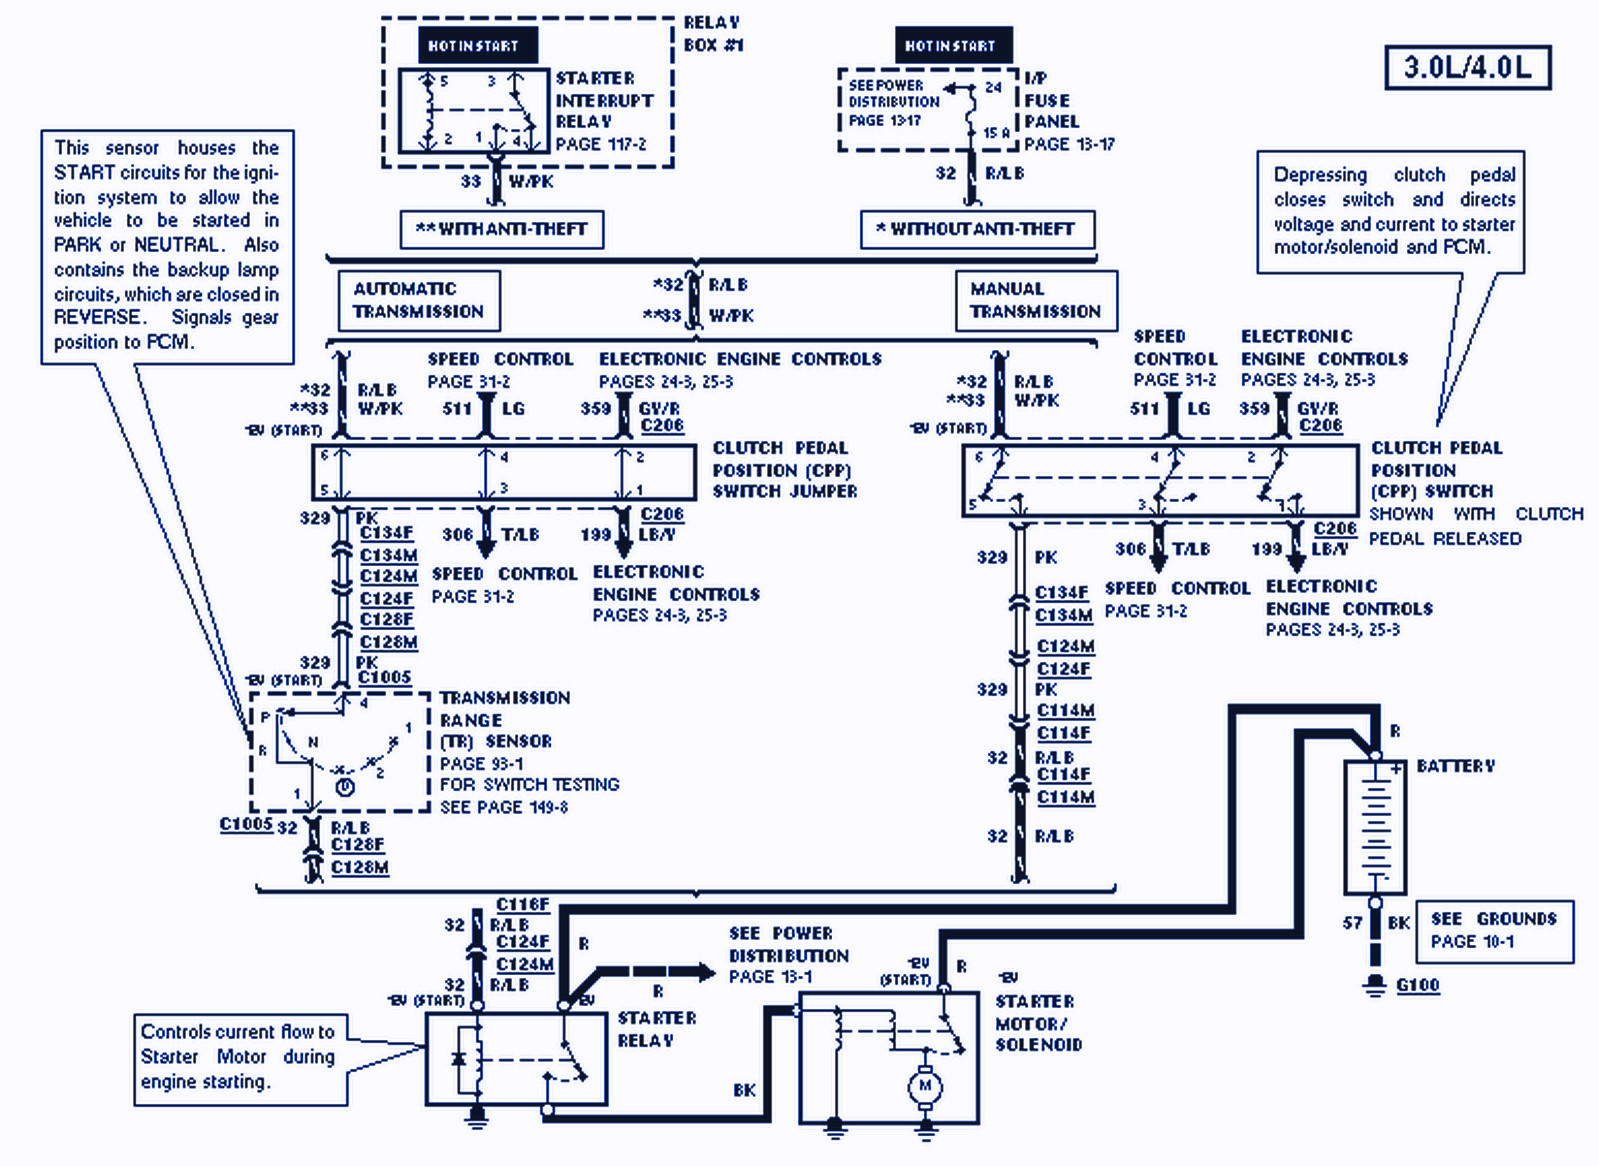 2004 Ford Ranger Wiring Diagram 36 Volt Yamaha Battery 93 Explorer Fuel Pump Get Free Image